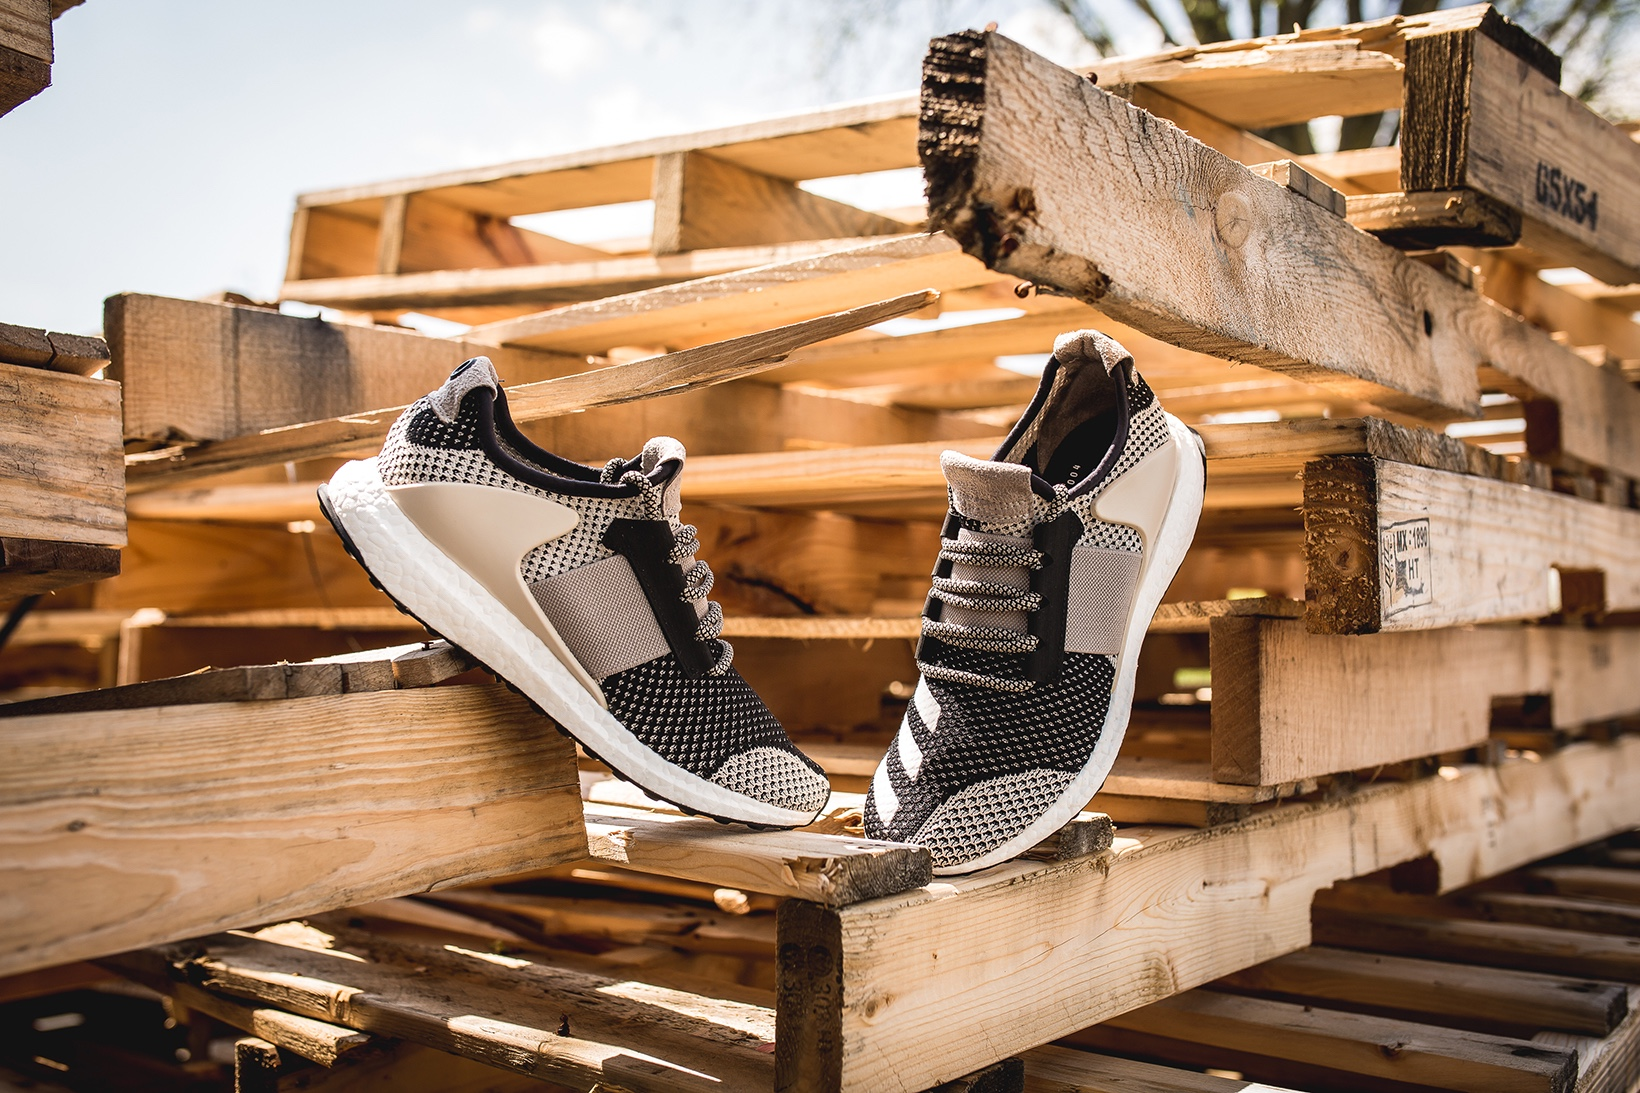 http-hypebeast.comimage201705adidas-consortium-ado-ultra-boost-zg-1